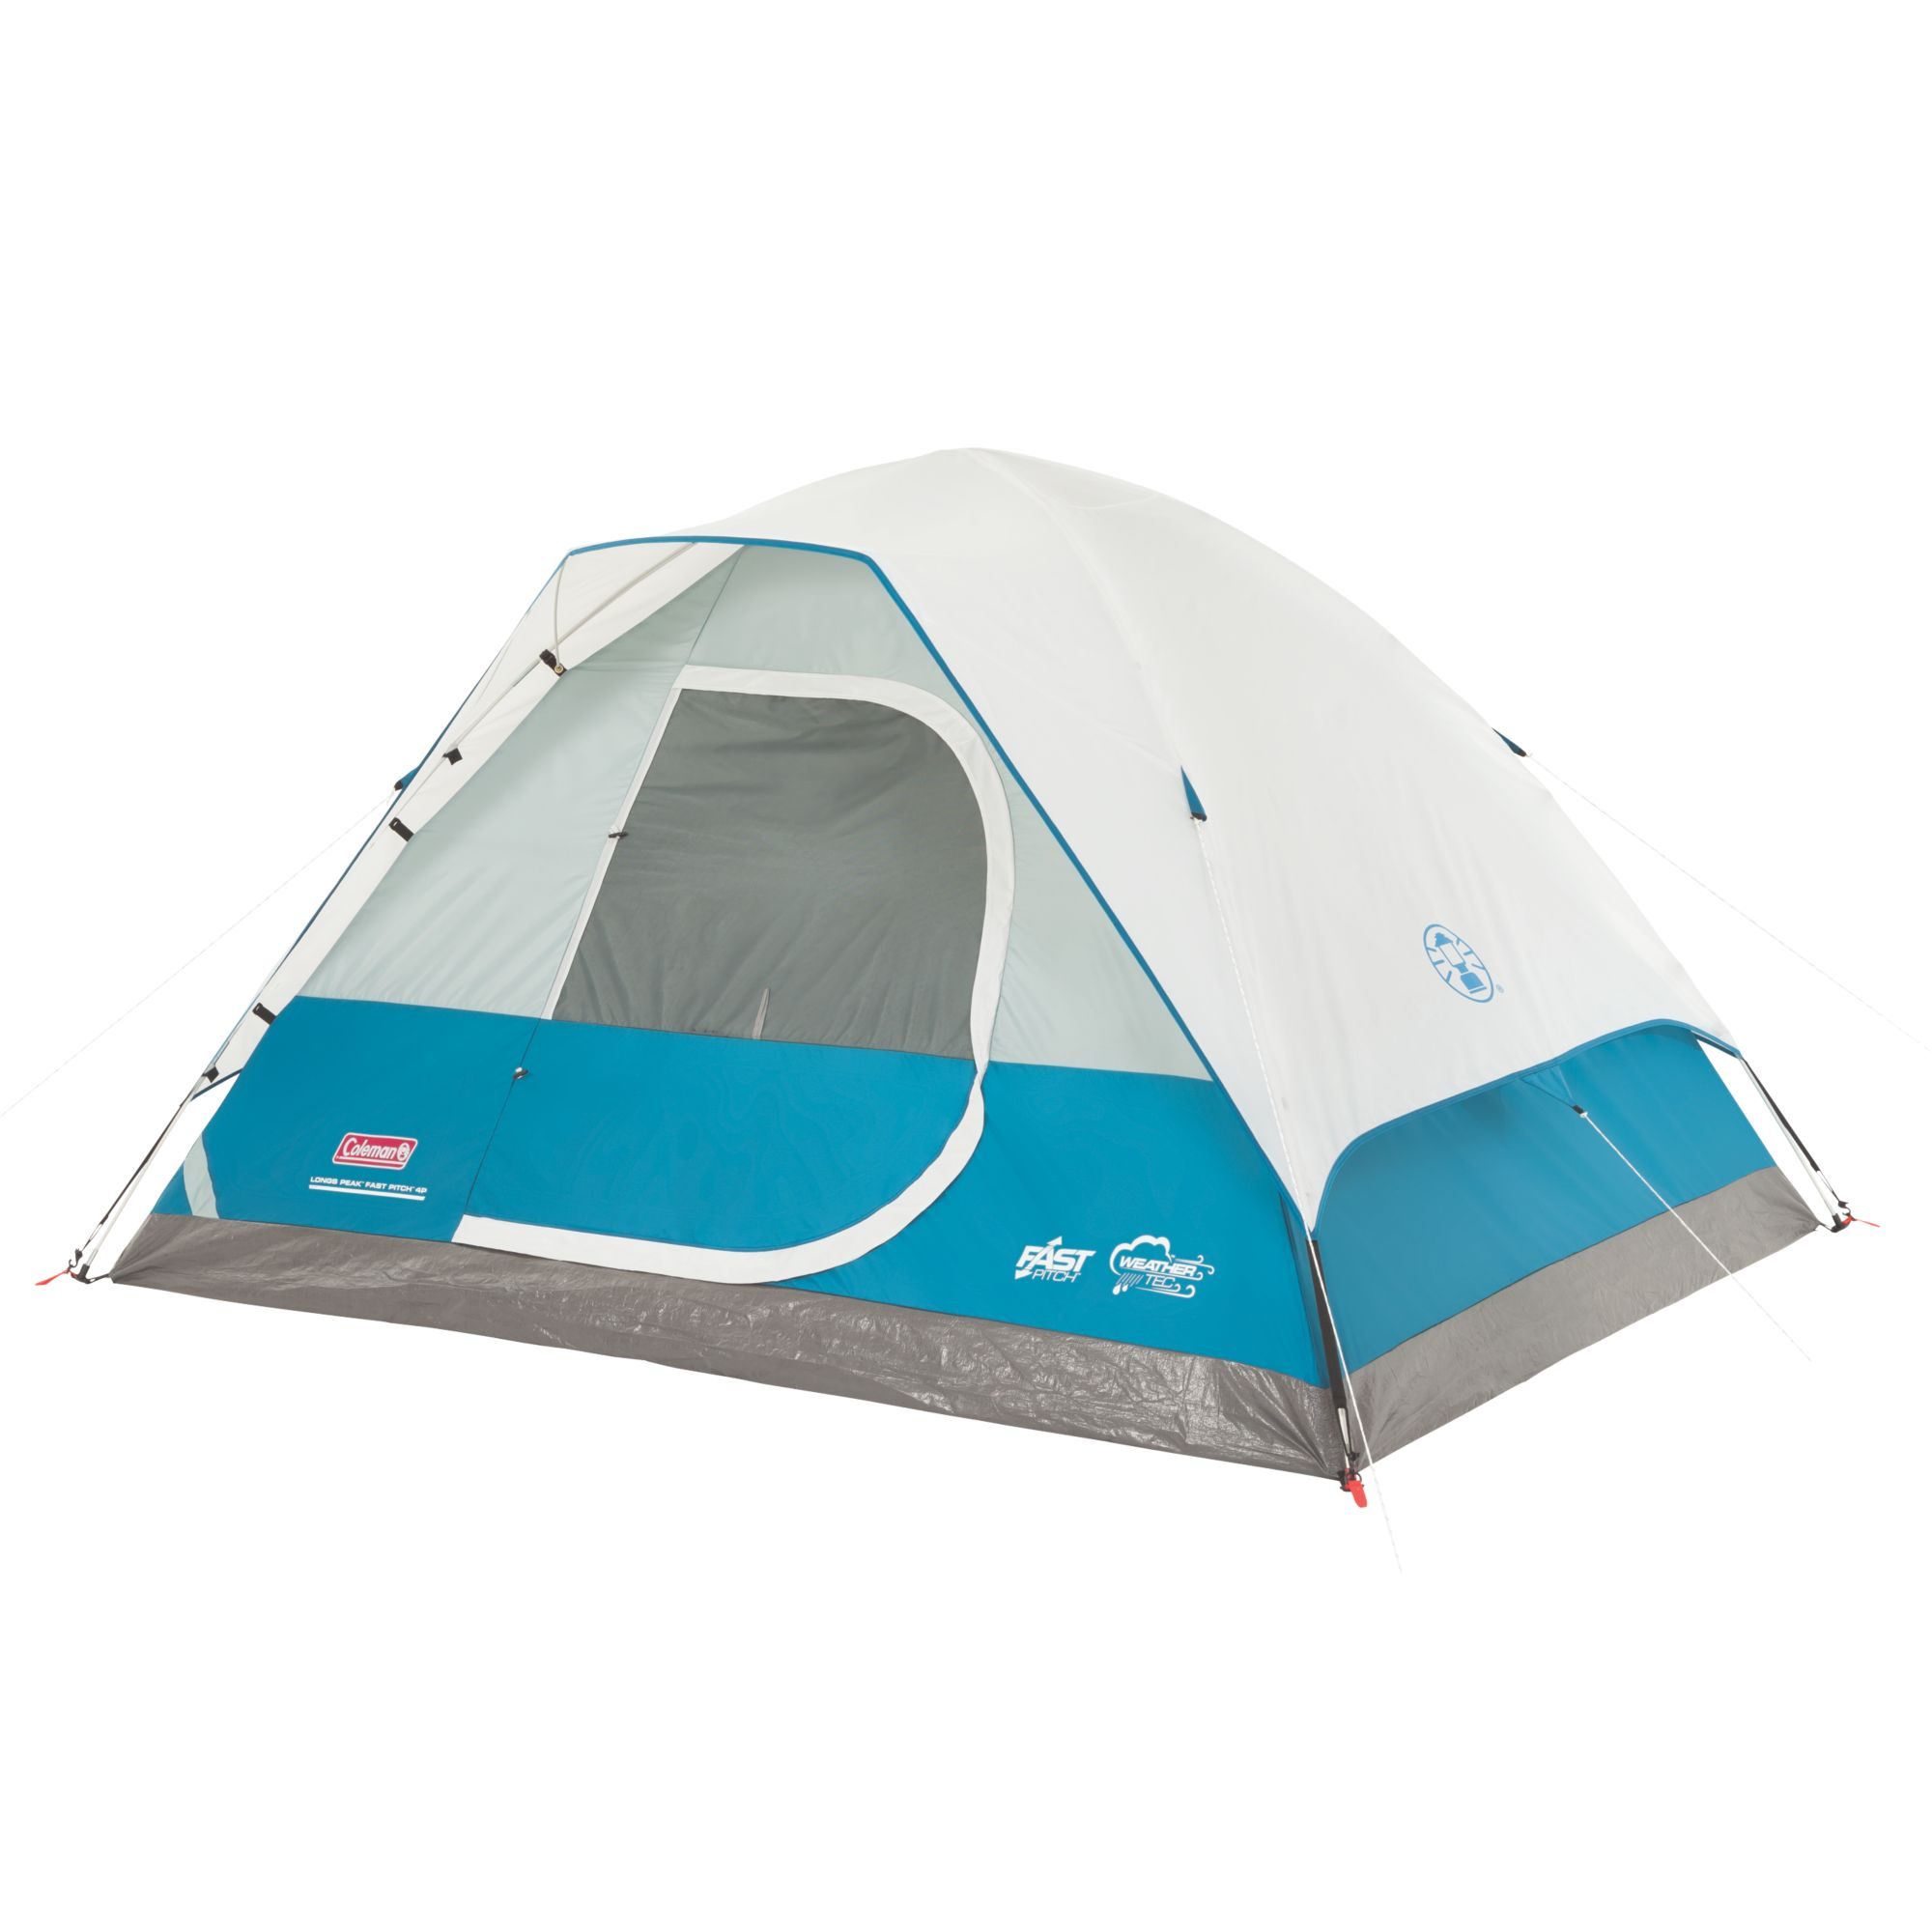 Longs Peak  Fast Pitch  4 Person Dome Tent. 4 Person Dome Tent   Camping Tents   Coleman